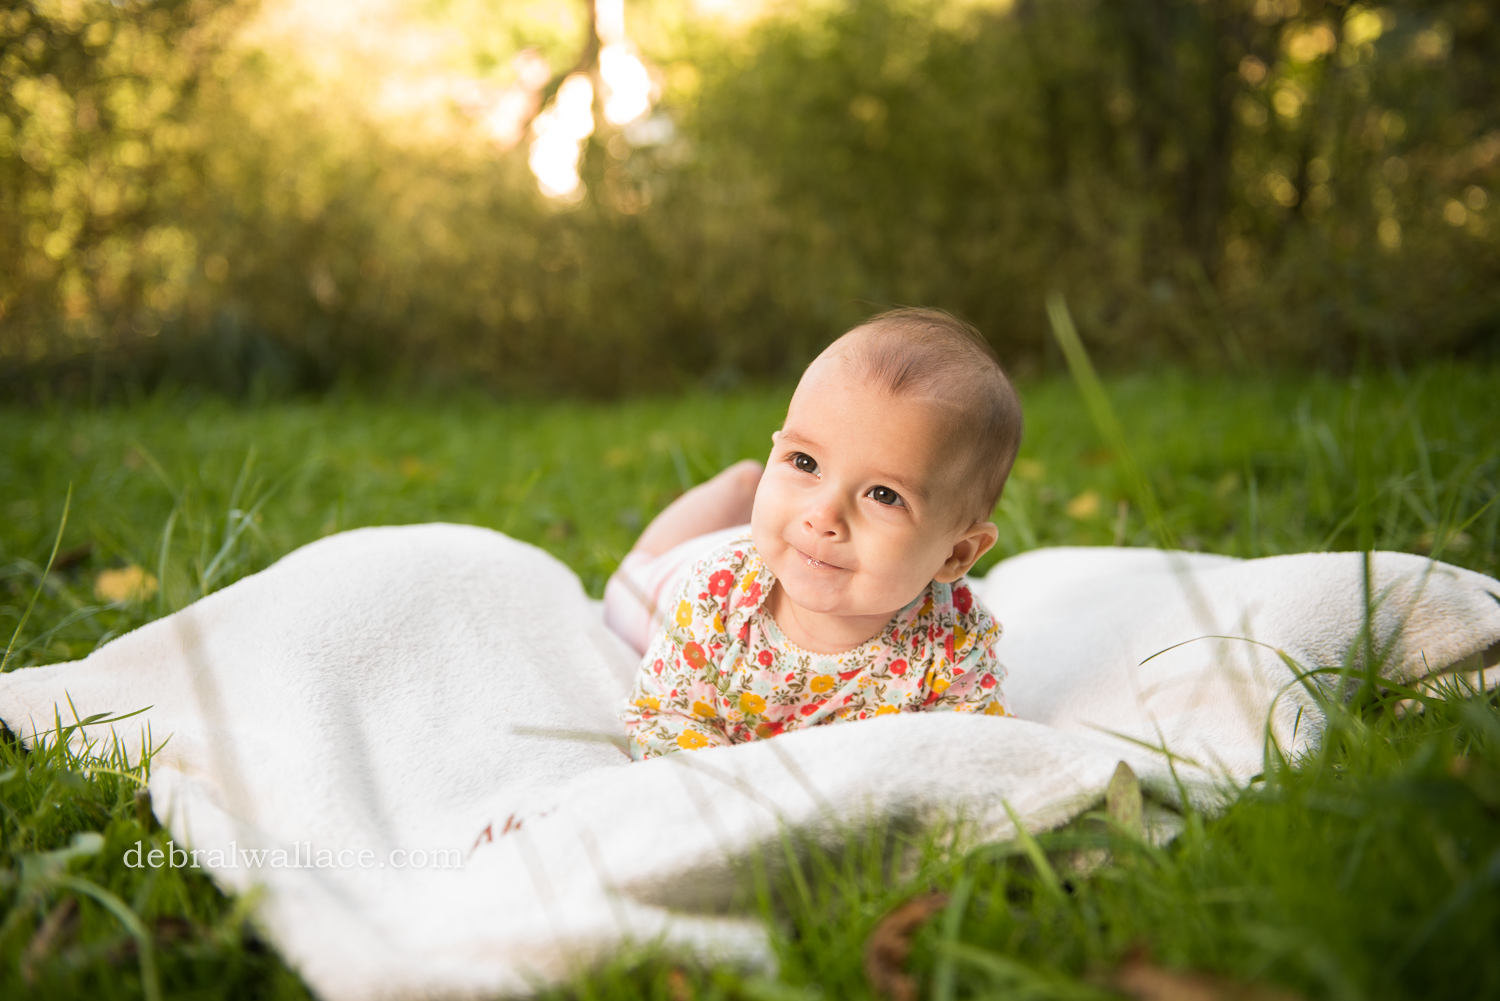 corbetts-glen-candid-family-photography-playful-baby-sibling-photos-0534